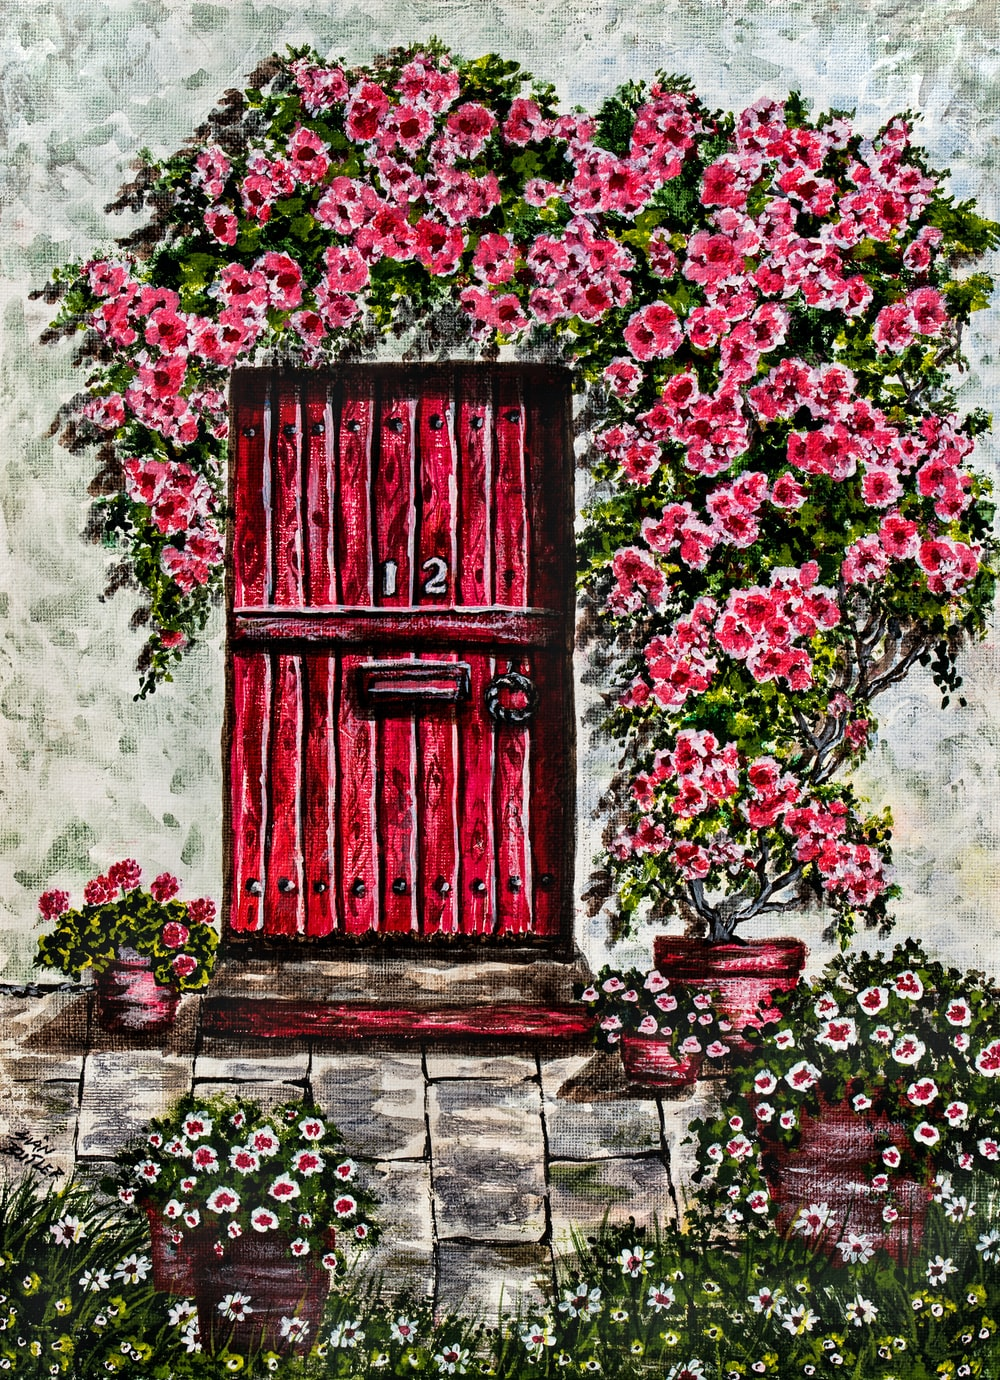 closed red wooden gate